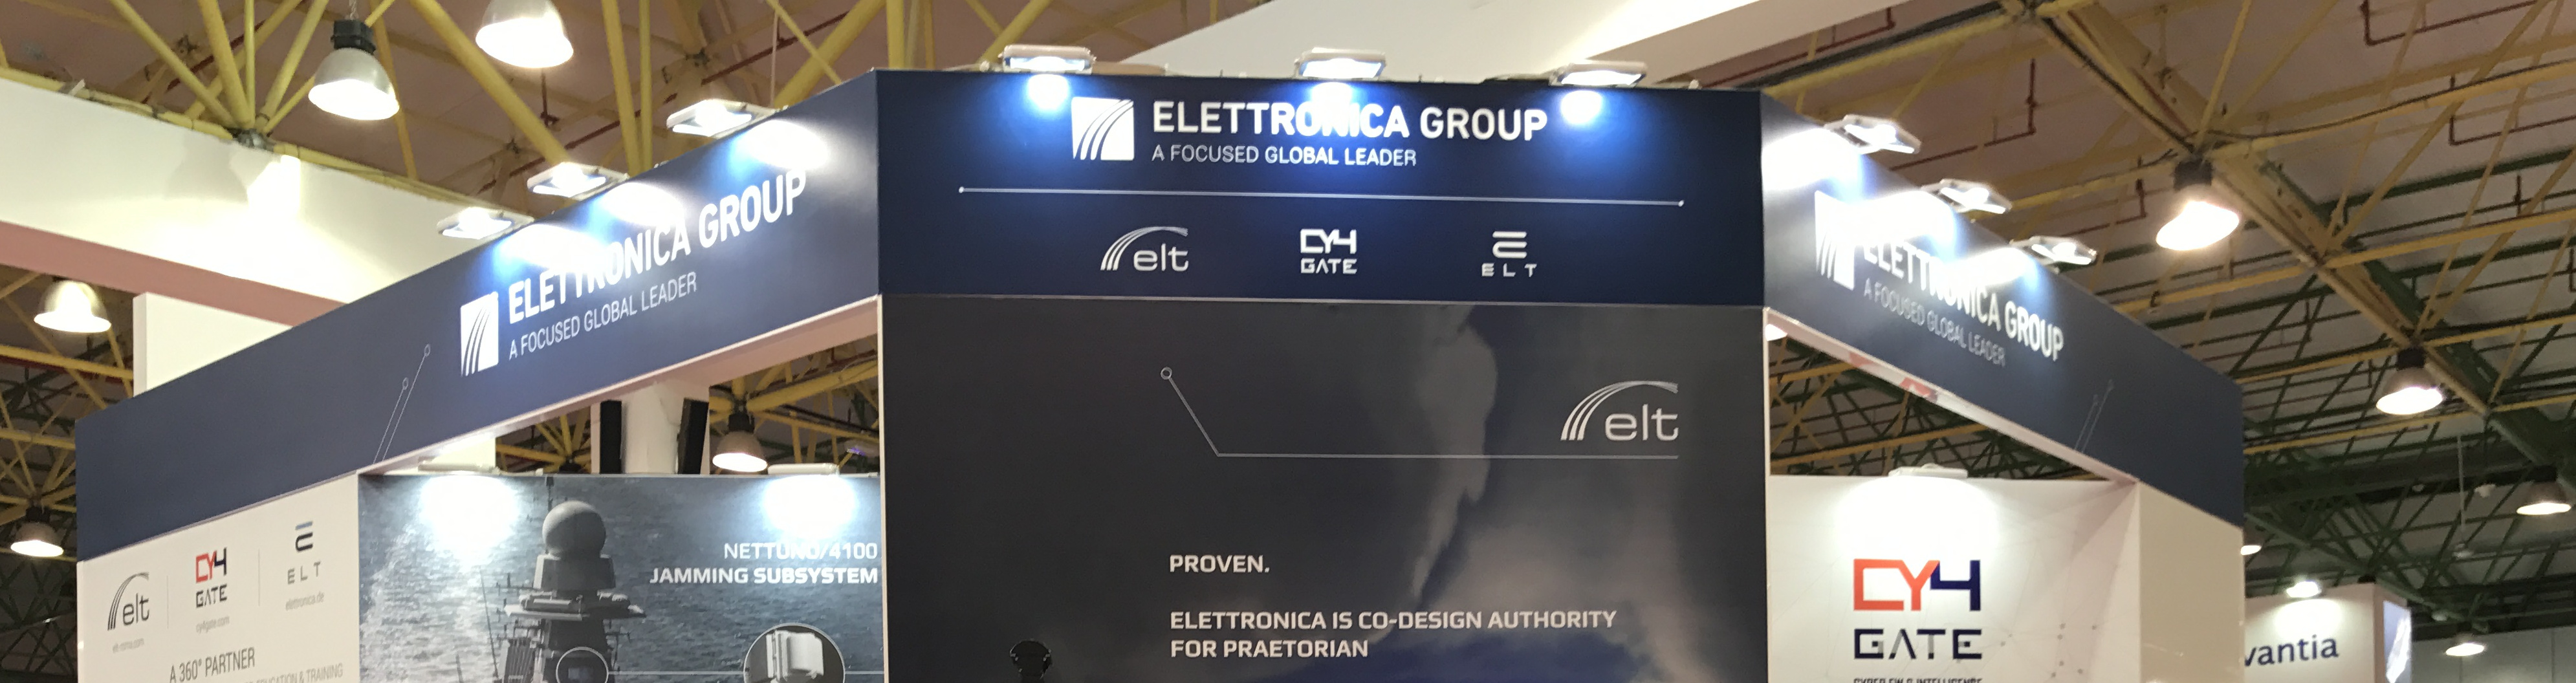 ELETTRONICA GROUP at GDA 2017